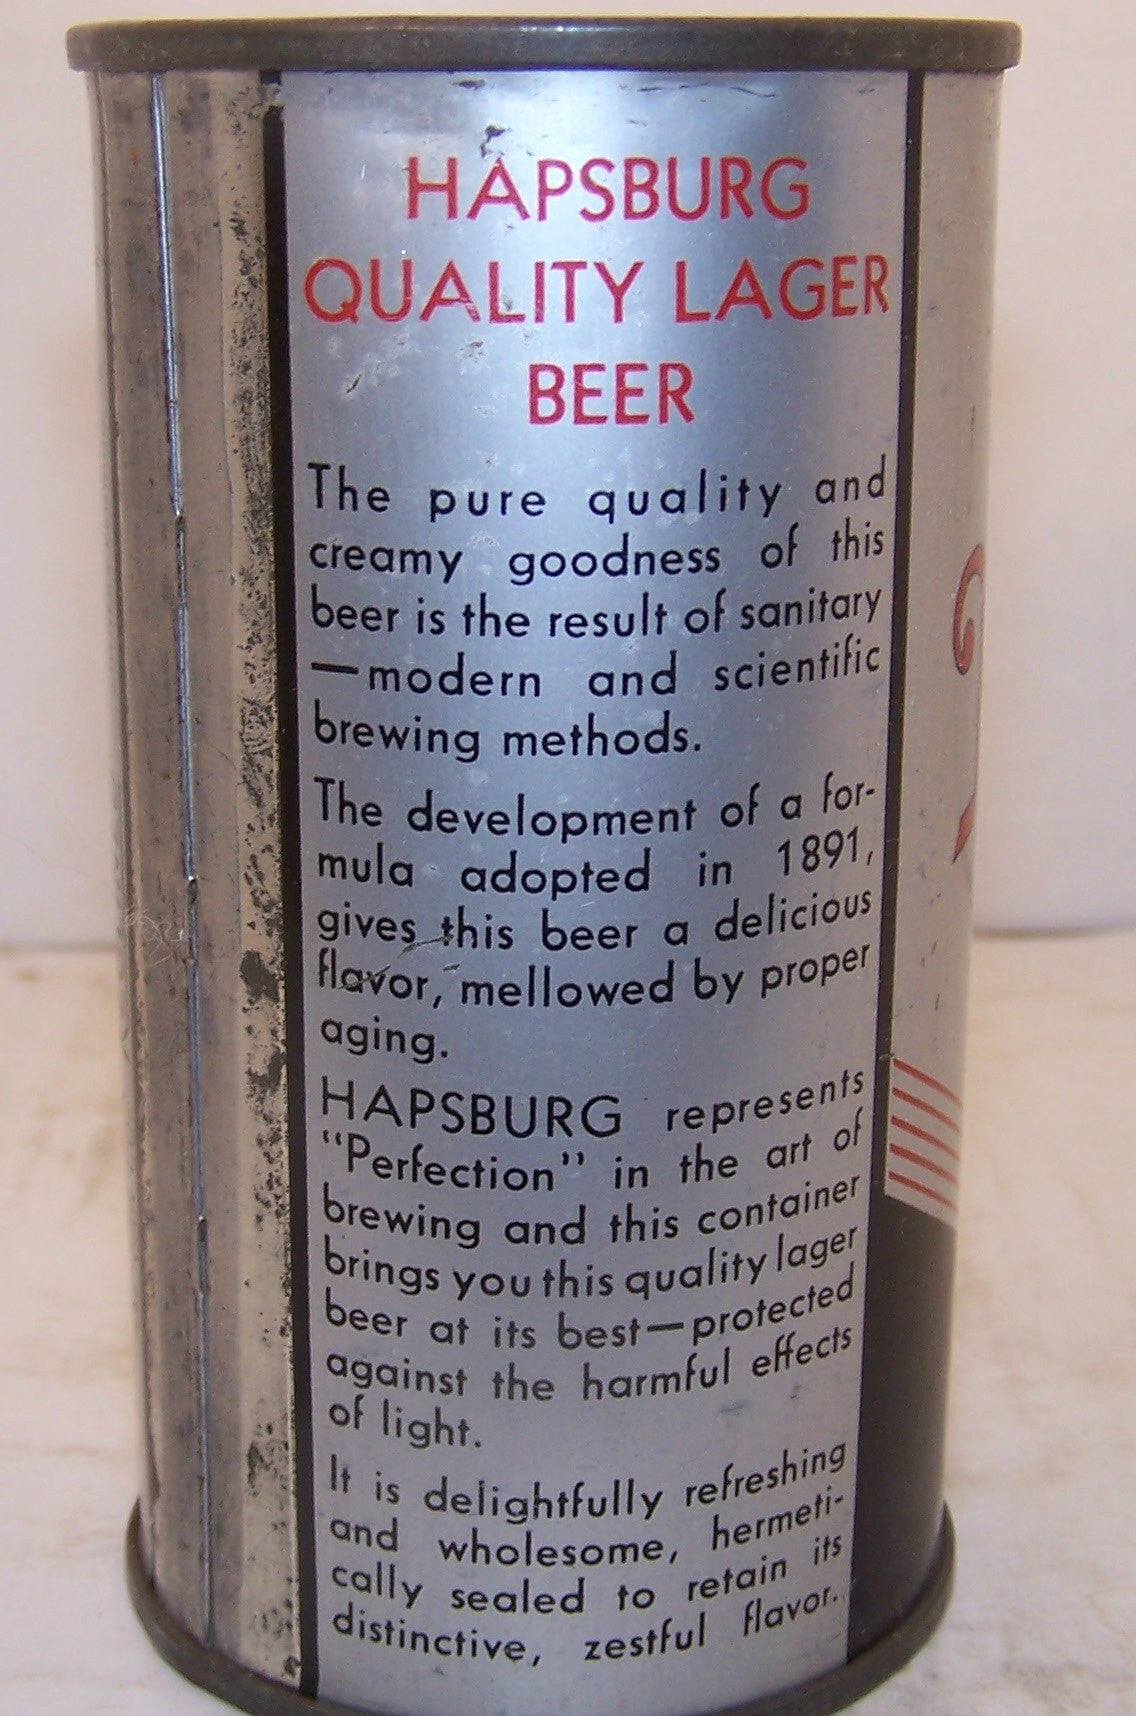 Best's Hapsburg Brand Quality Lager Beer, Lilek page # 107 Grade 1- Sold 2/10/15